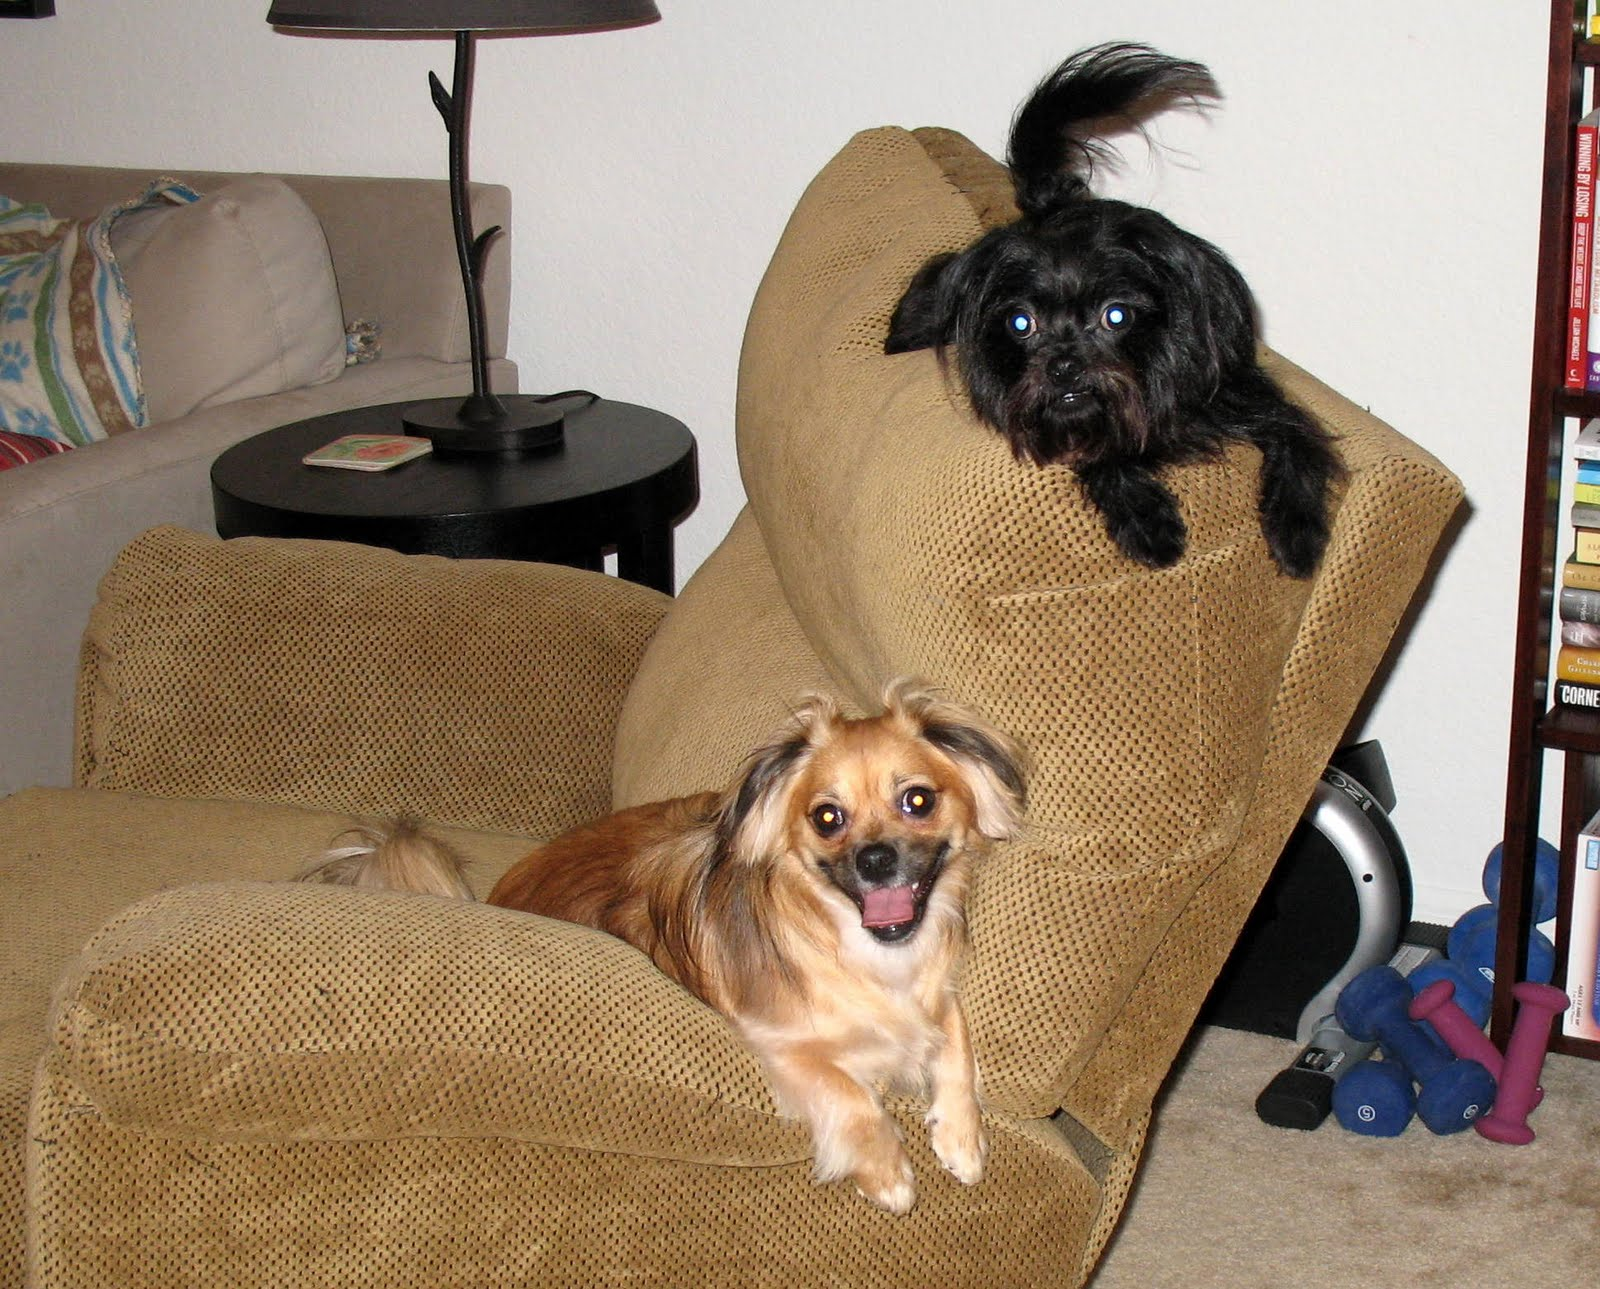 Chihuahua Shih Tzu Mix http://www.dogforums.com/general-dog-forum/2085-chihuahua-shih-tzu-mix.html